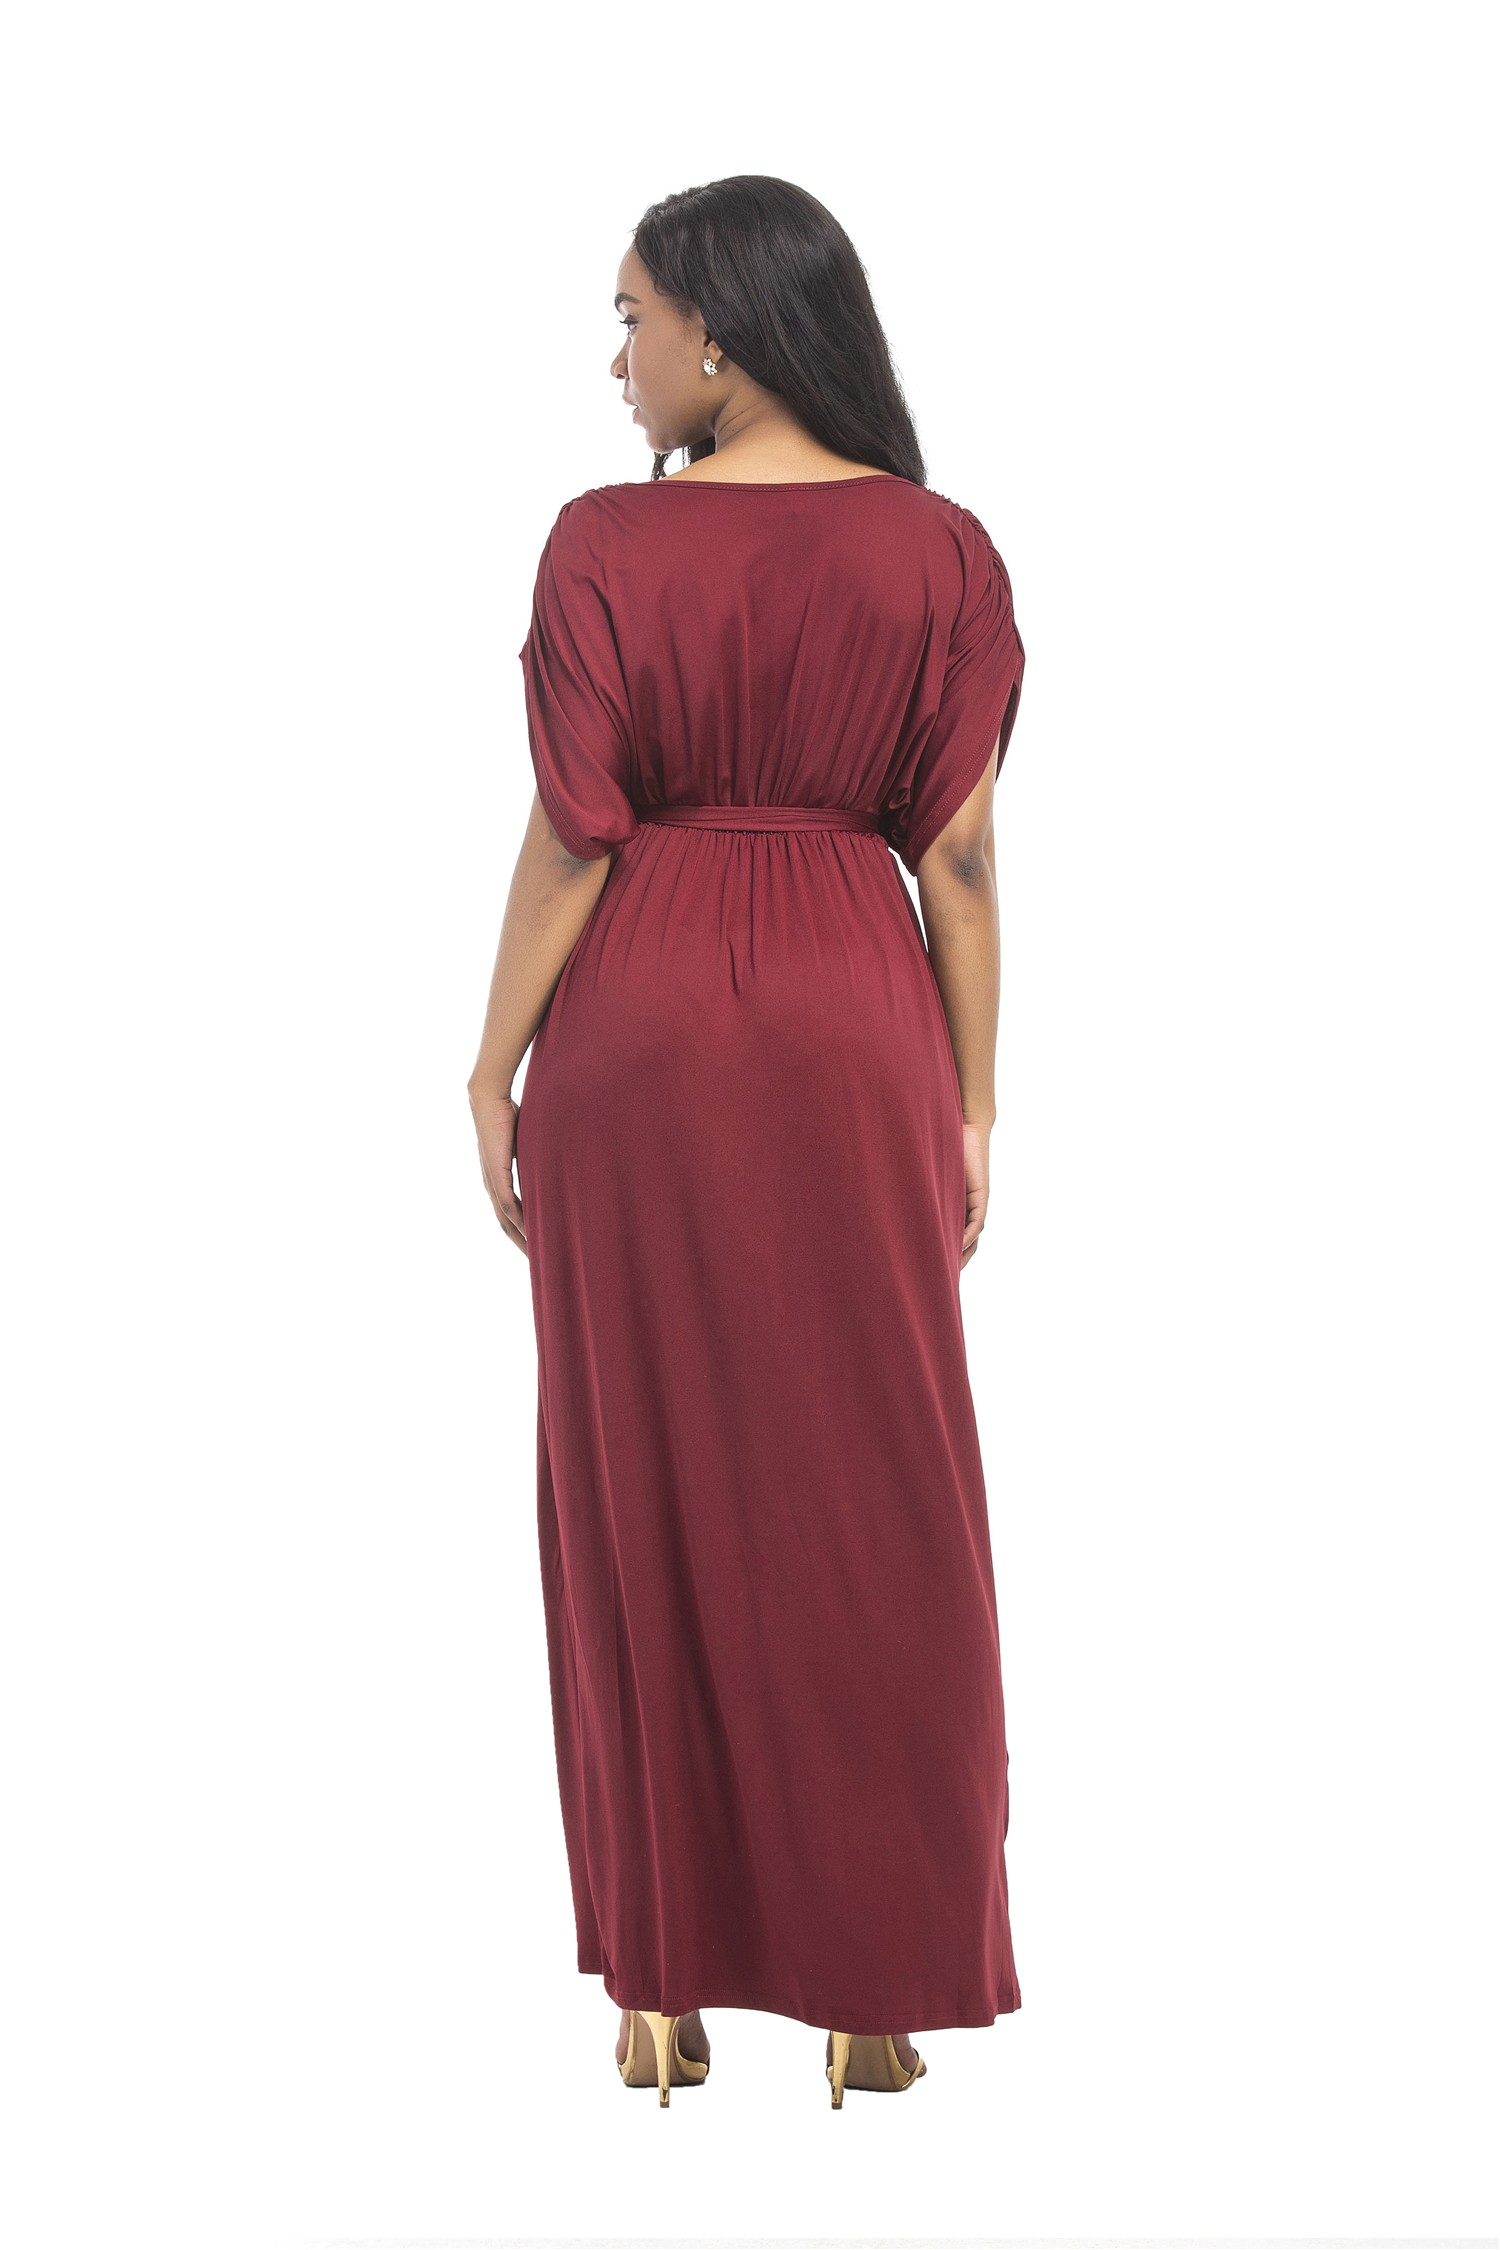 aaa09febba8e Sexy V Neck Long Burgundy Jersey Ruched Sleeve Summer Fall Dress With Sash  lightbox moreview · lightbox moreview · lightbox moreview